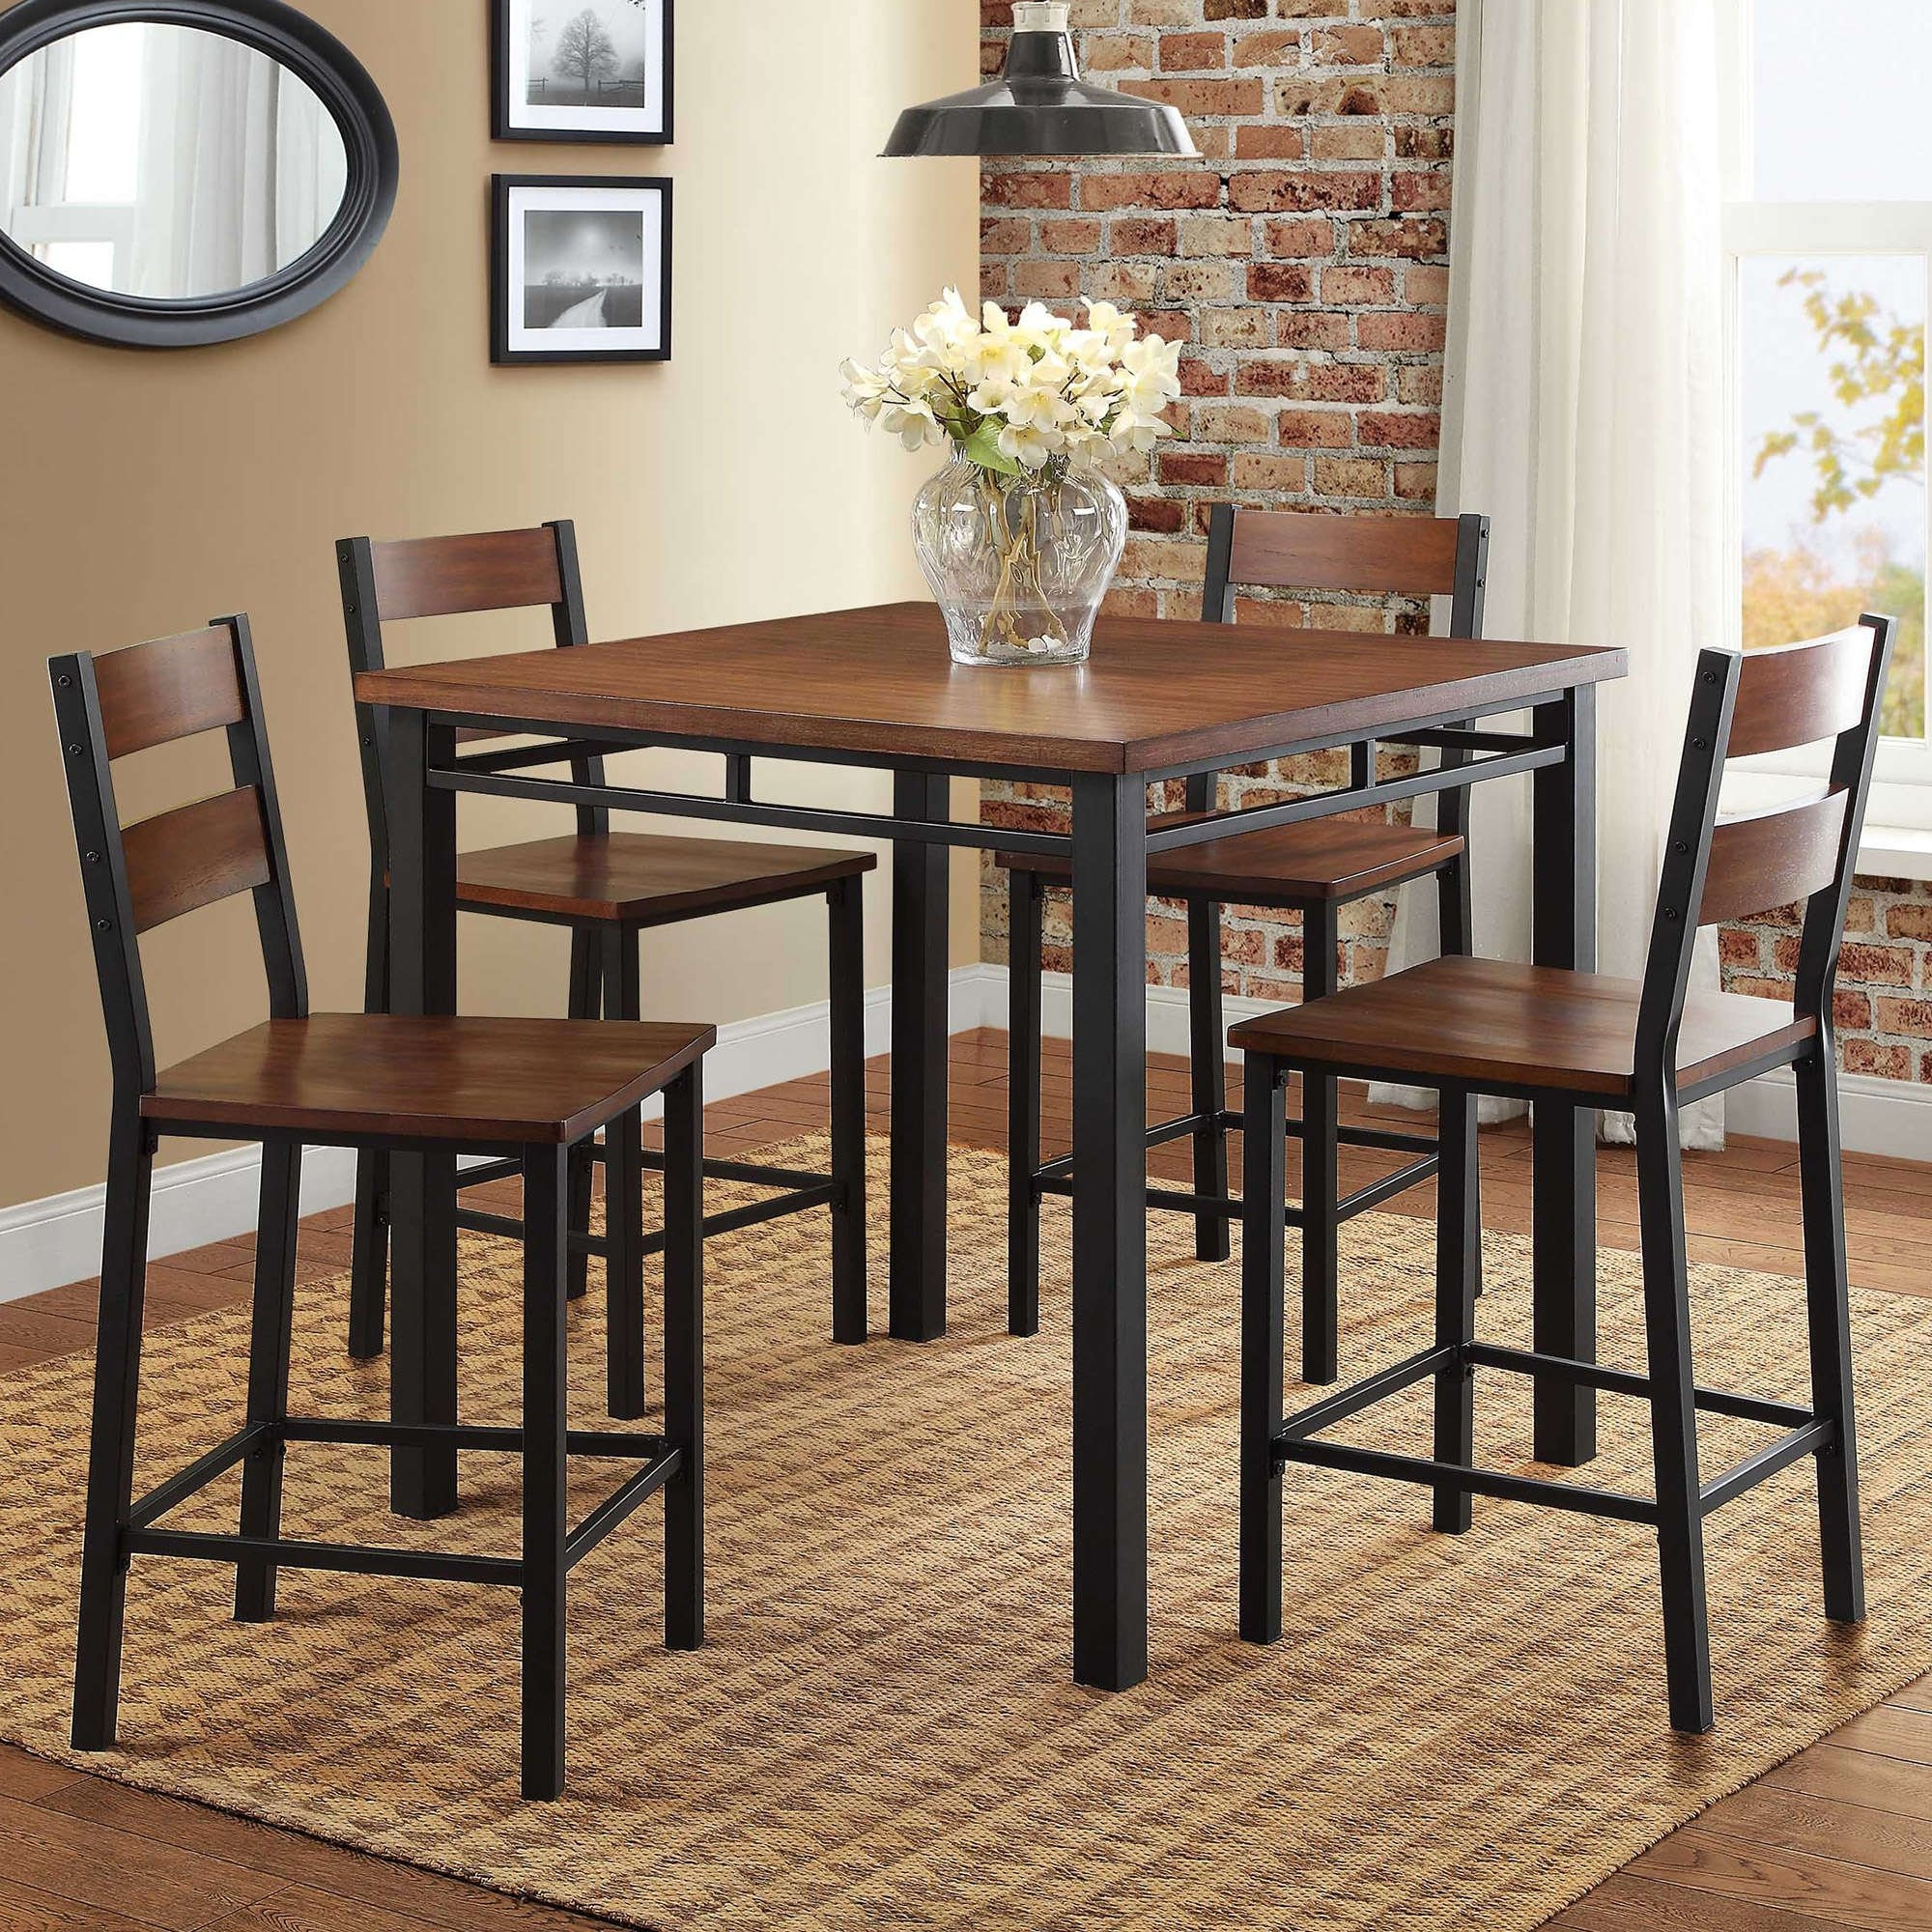 Counter Height Dining Chairs You Ll, Counter Height Kitchen Table And Chairs Set